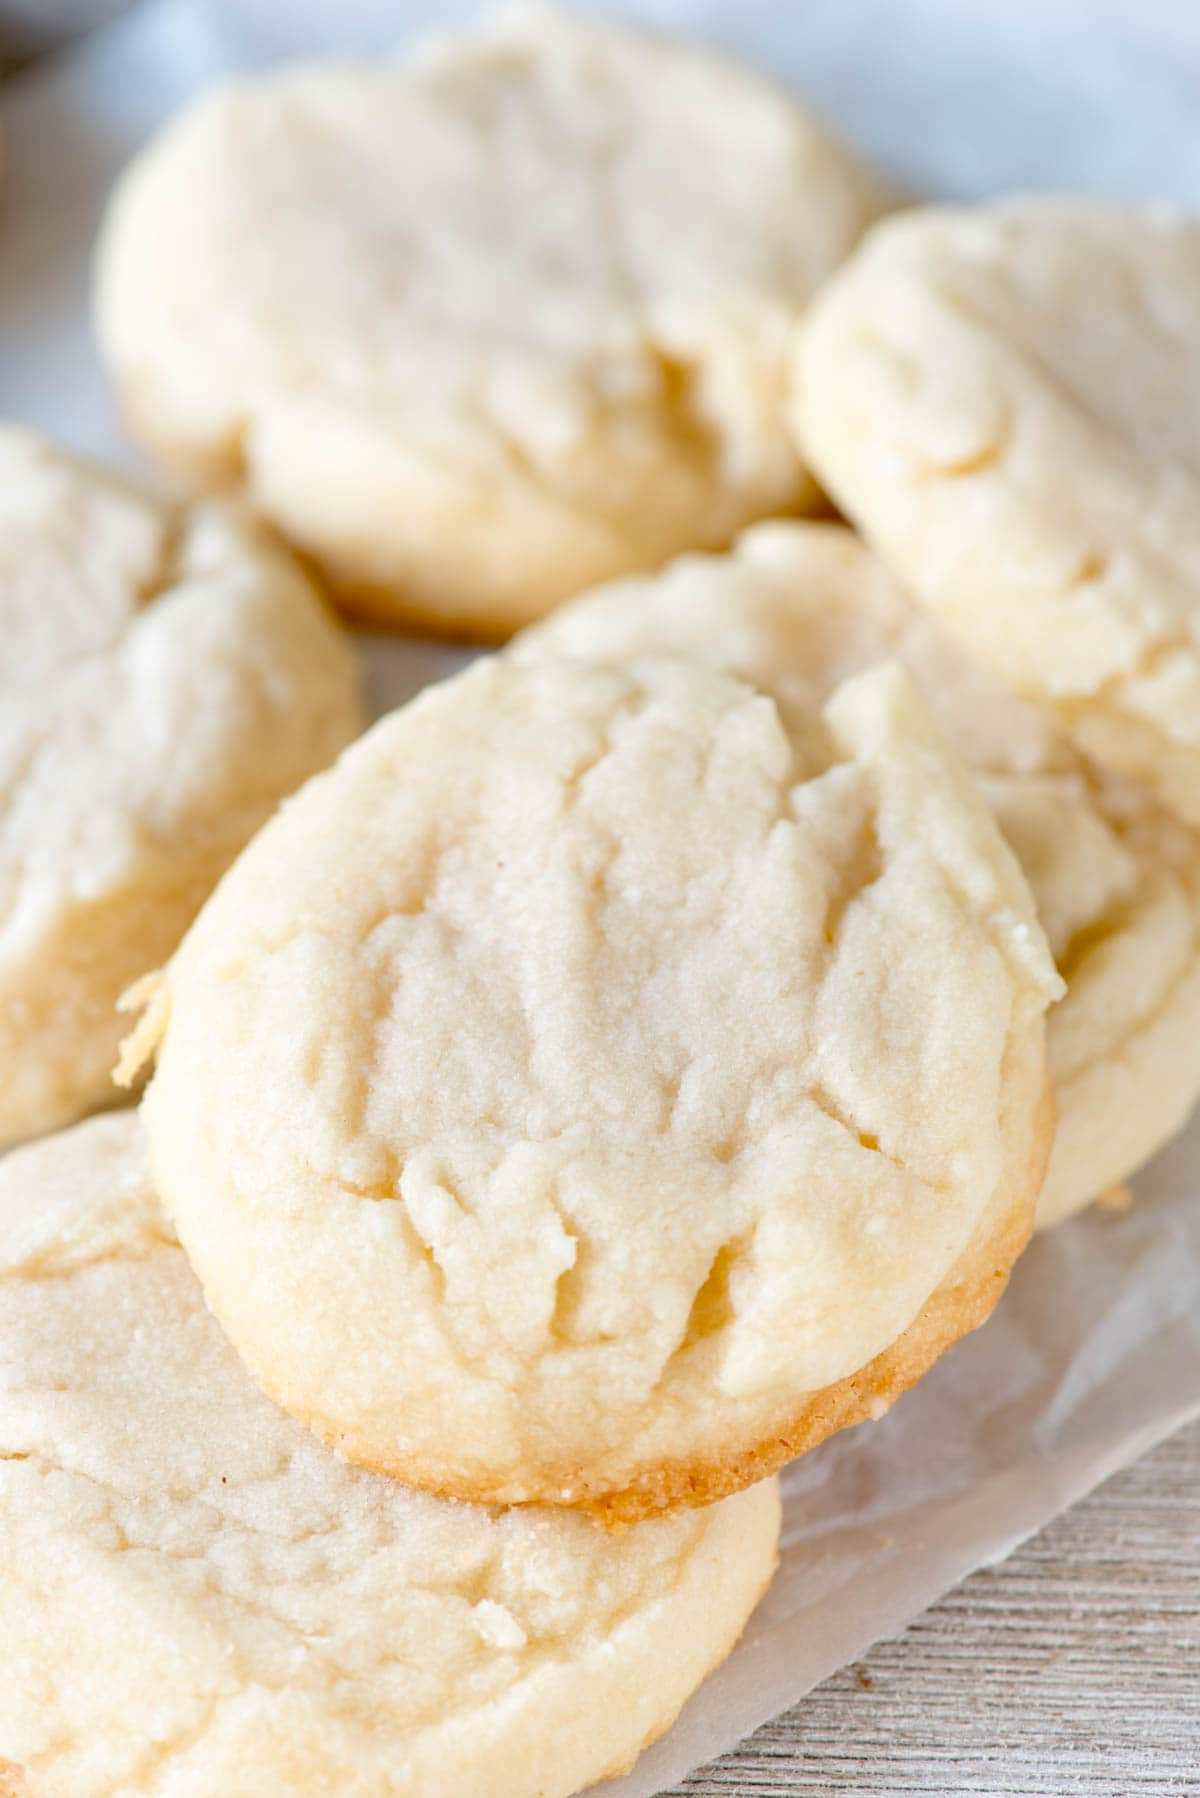 Soft and Chewy Shortbread Cookies; There are only 4 ingredients in the easy basic shortbread dough and it bakes up to a soft and chewy cookie!